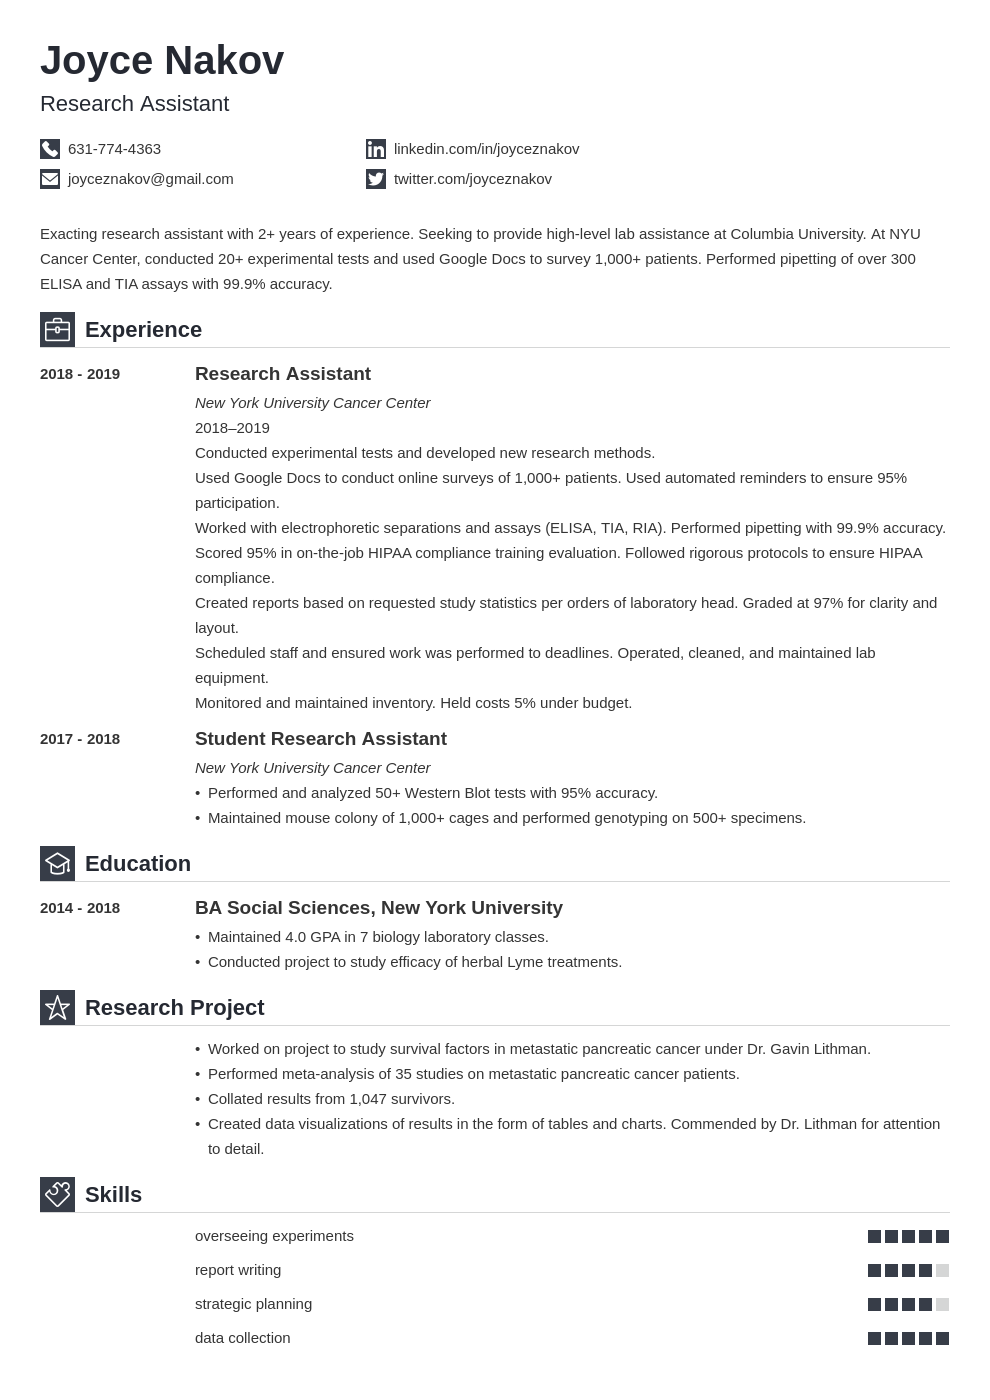 research assistant template iconic uk